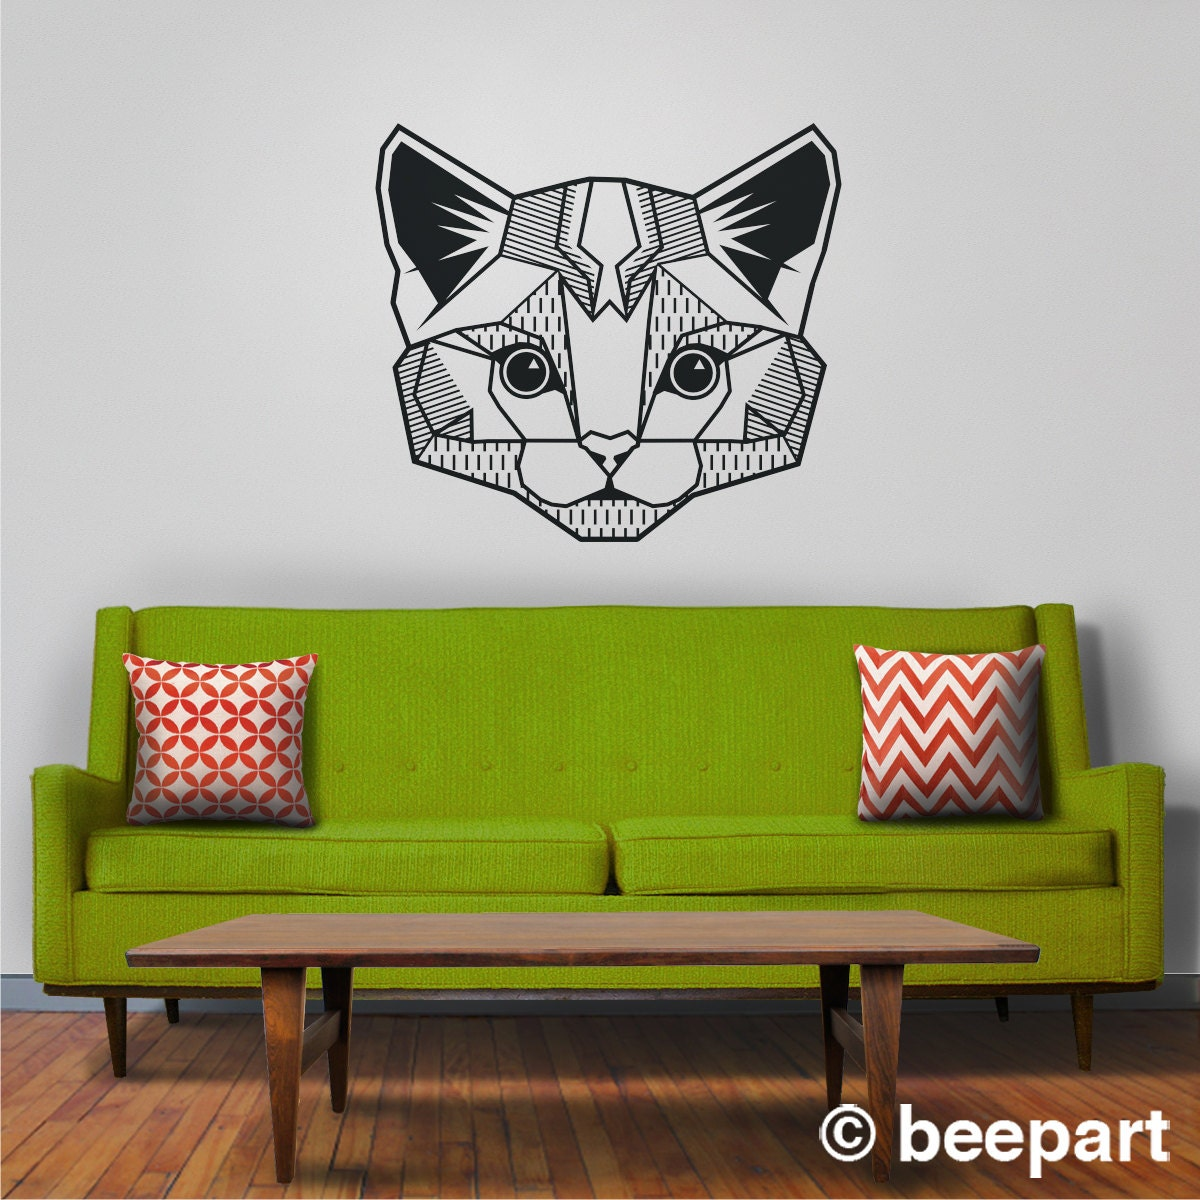 Cat wall decal geometric cat art abstract feline wall sticker cat wall decal geometric cat art abstract feline wall sticker kitty face cat meme geometric free shipping amipublicfo Gallery